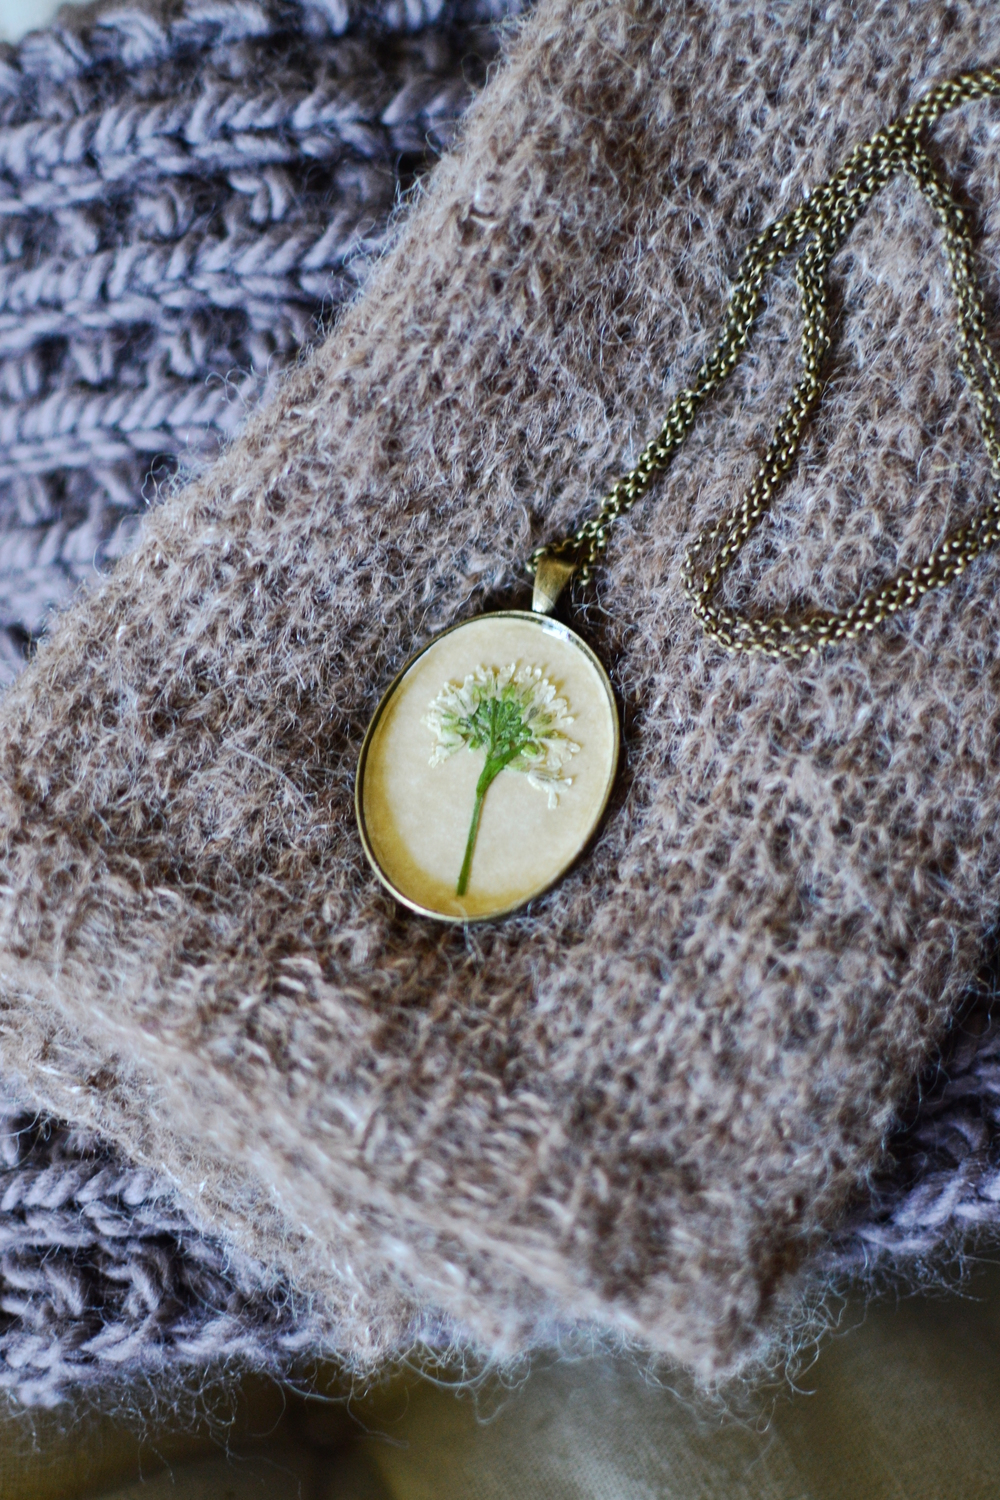 Mandarine's: Botanical antique pendant